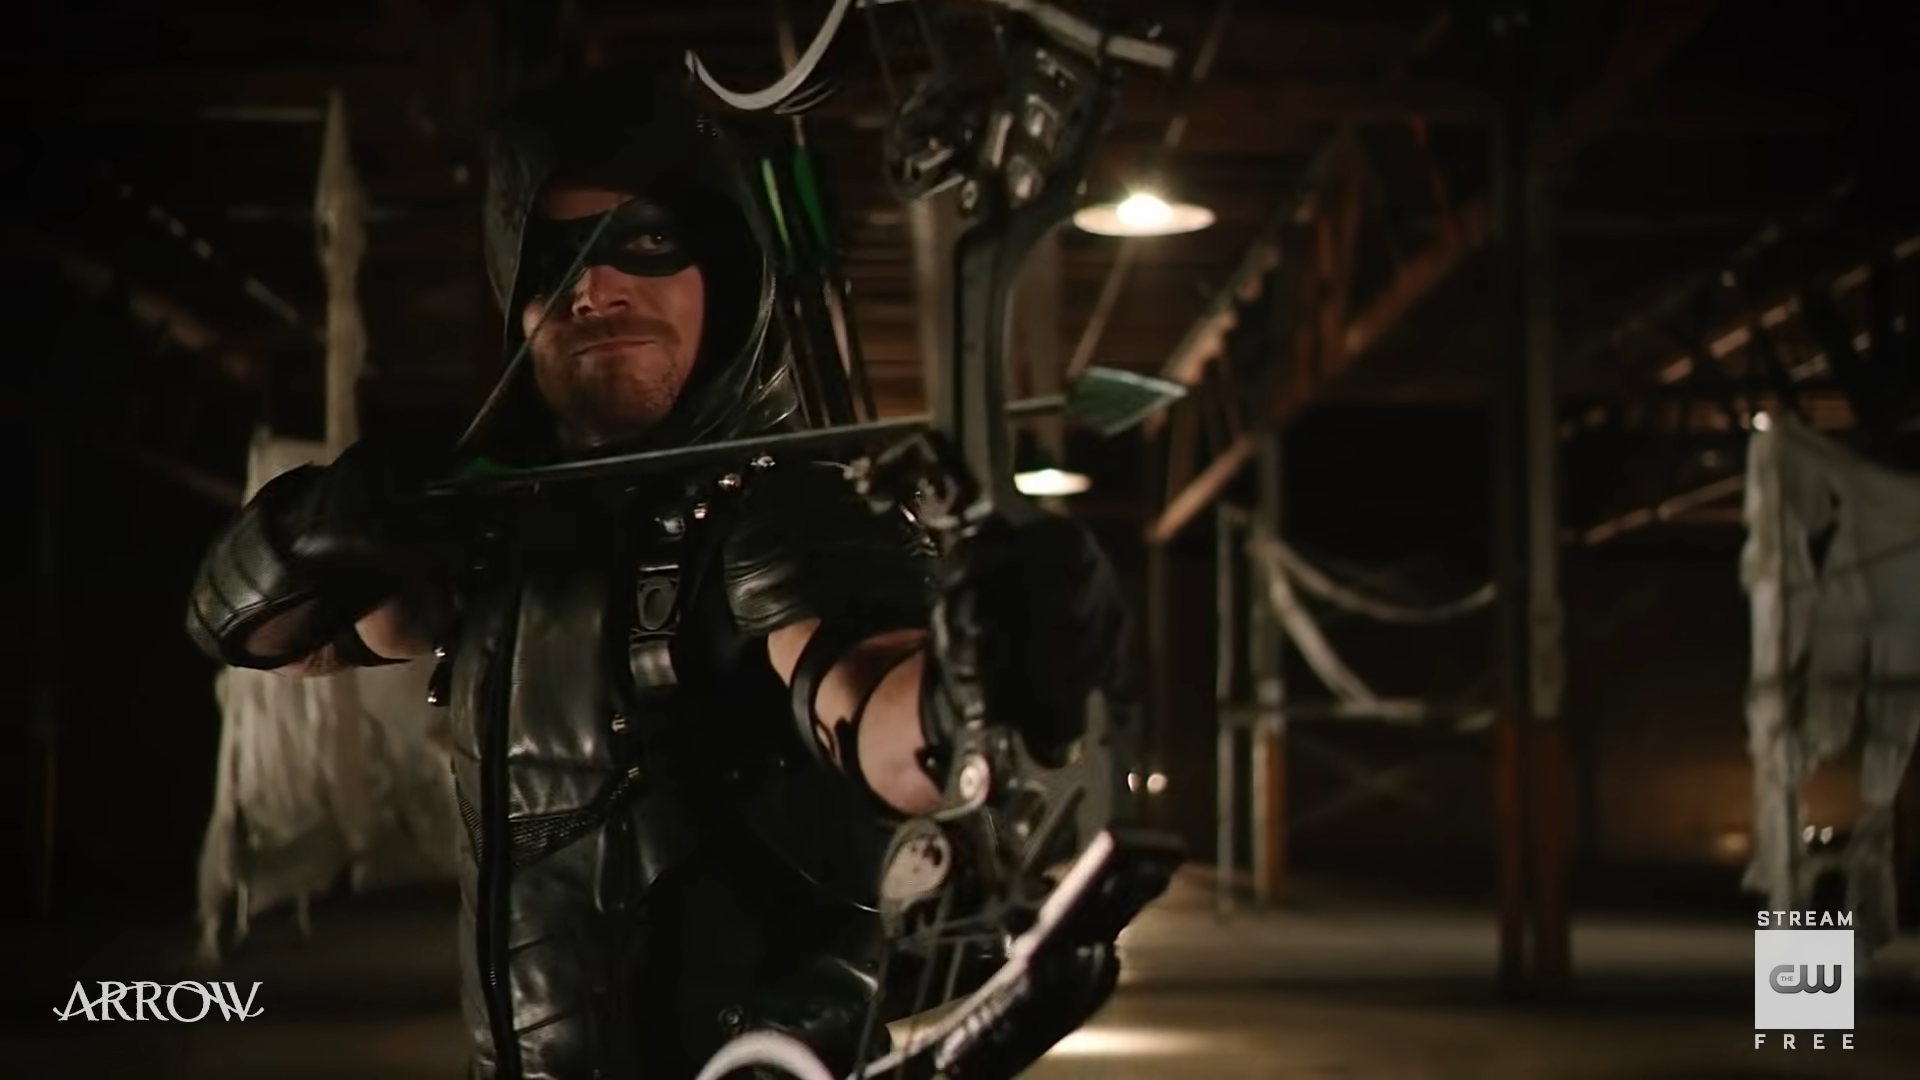 'Arrow' Finally Concluding After 8 Seasons